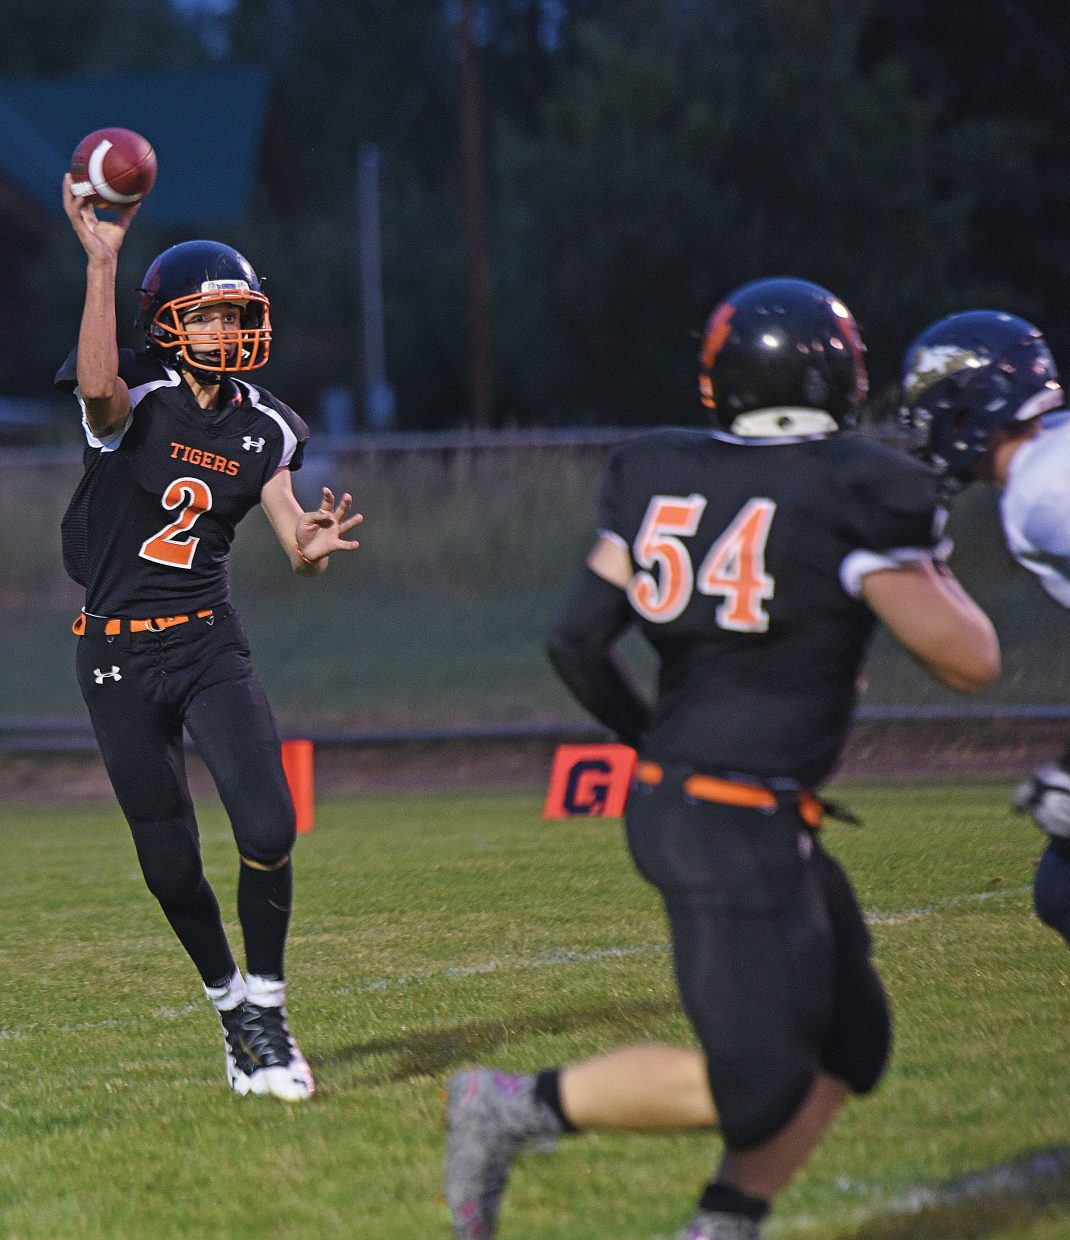 Hayden's quarterback Garrett St. Clair tosses a pass to Christian Carson in the first half of Friday's game in Hayden. The Hayden Tigers topped the Nederland Panthers, 12-6, in their season opener.